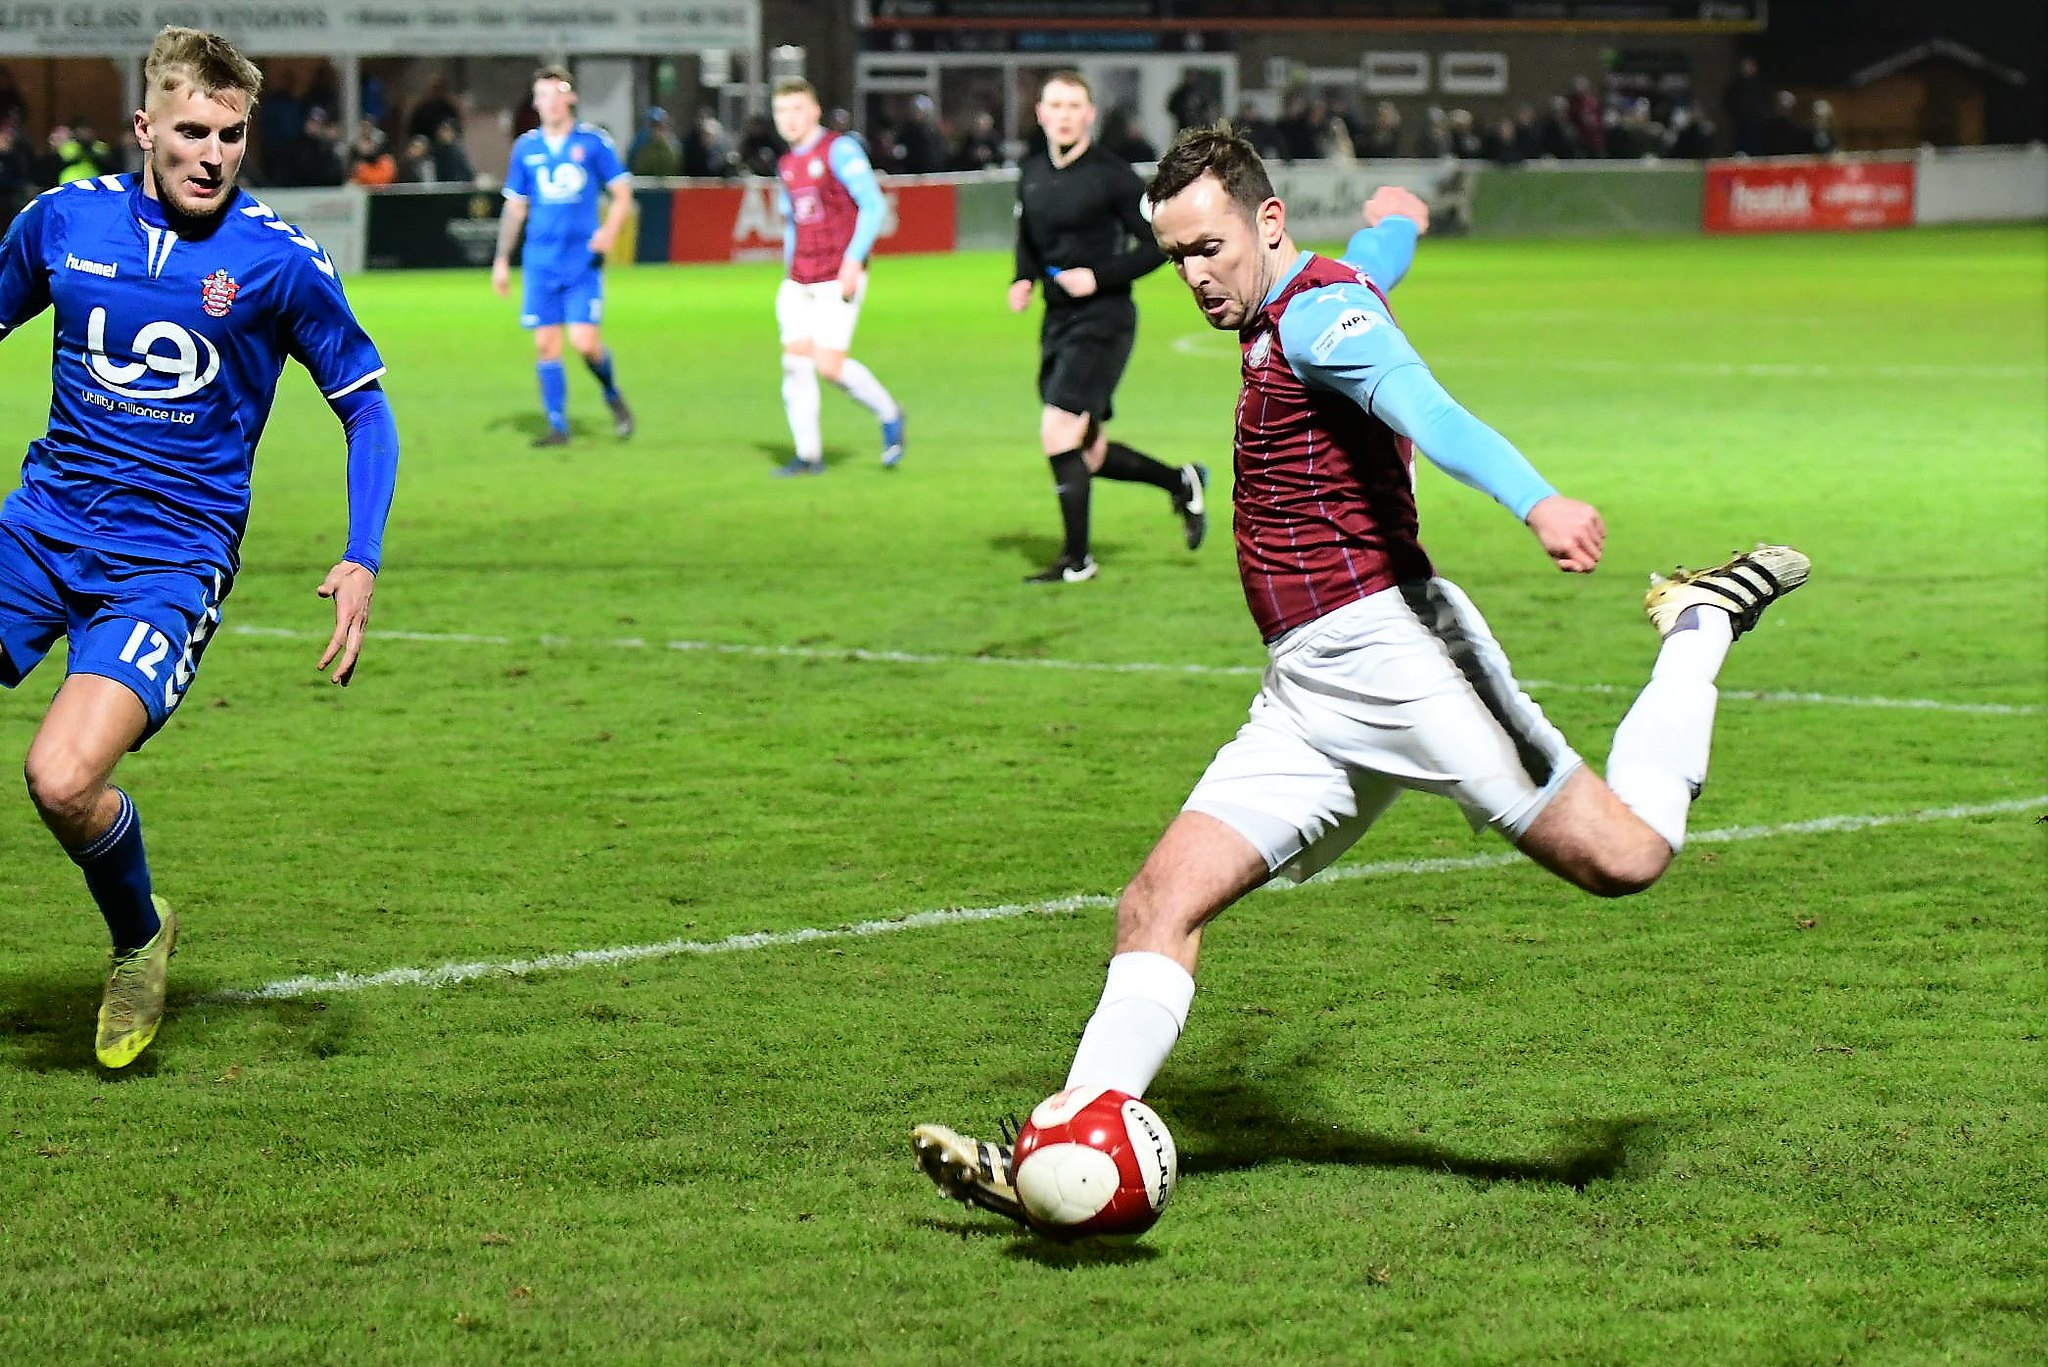 Match Preview: South Shields vs Stockton Town, Durham Challenge Cup